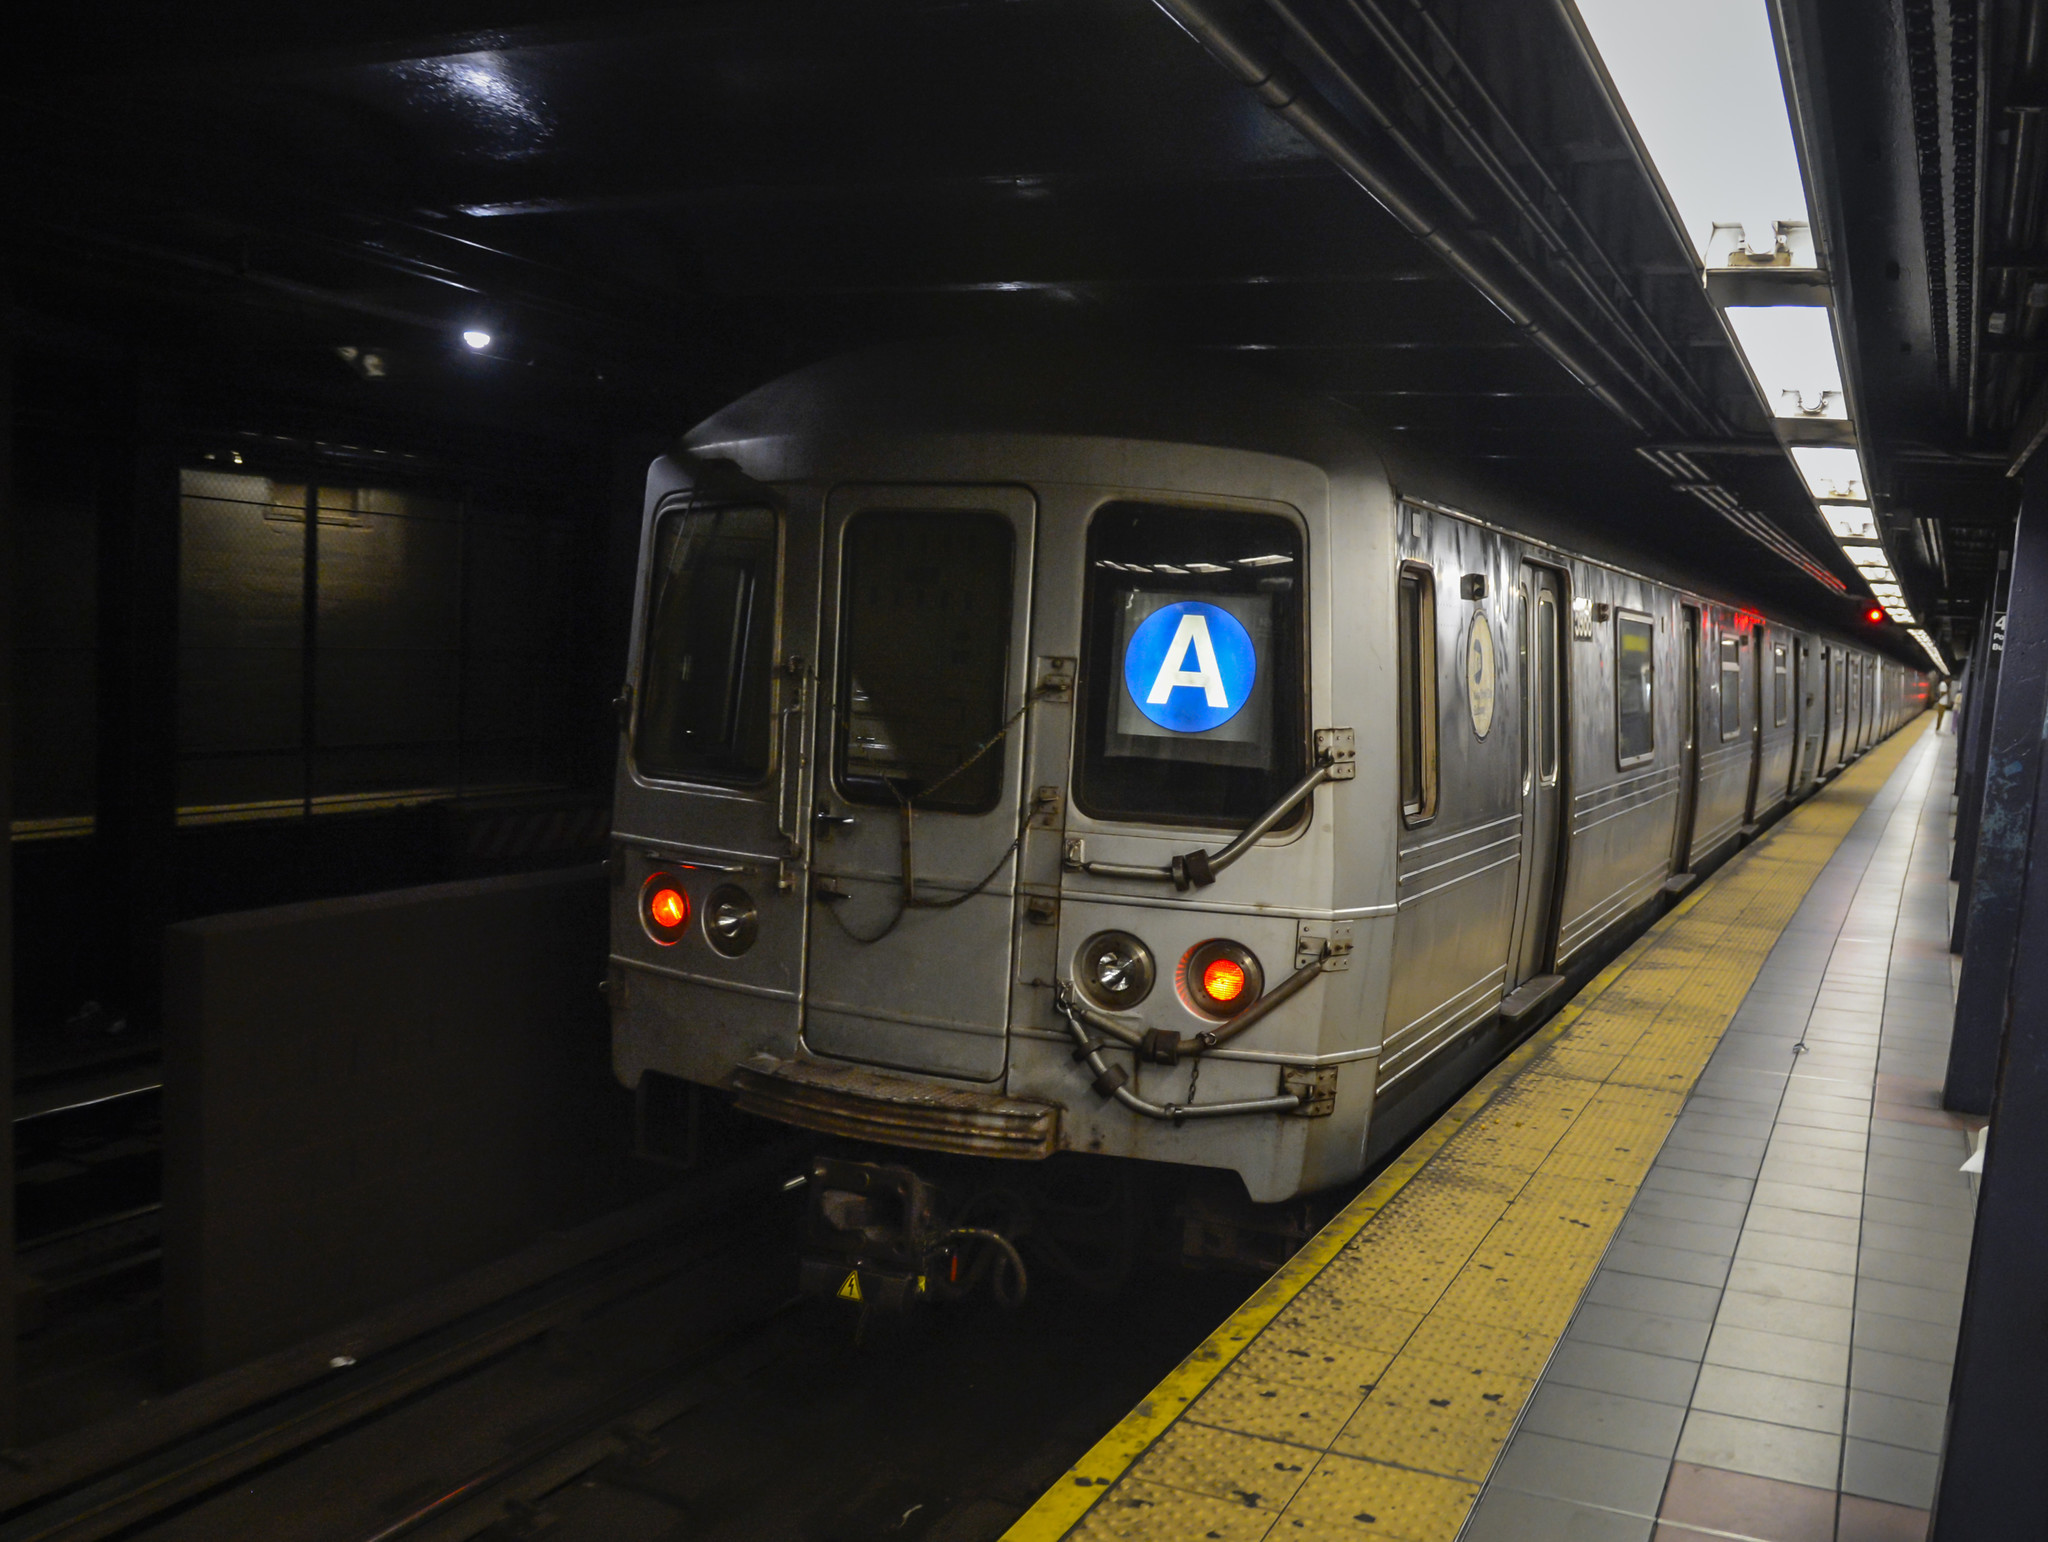 Man dies after being struck by train in Harlem subway tunnel